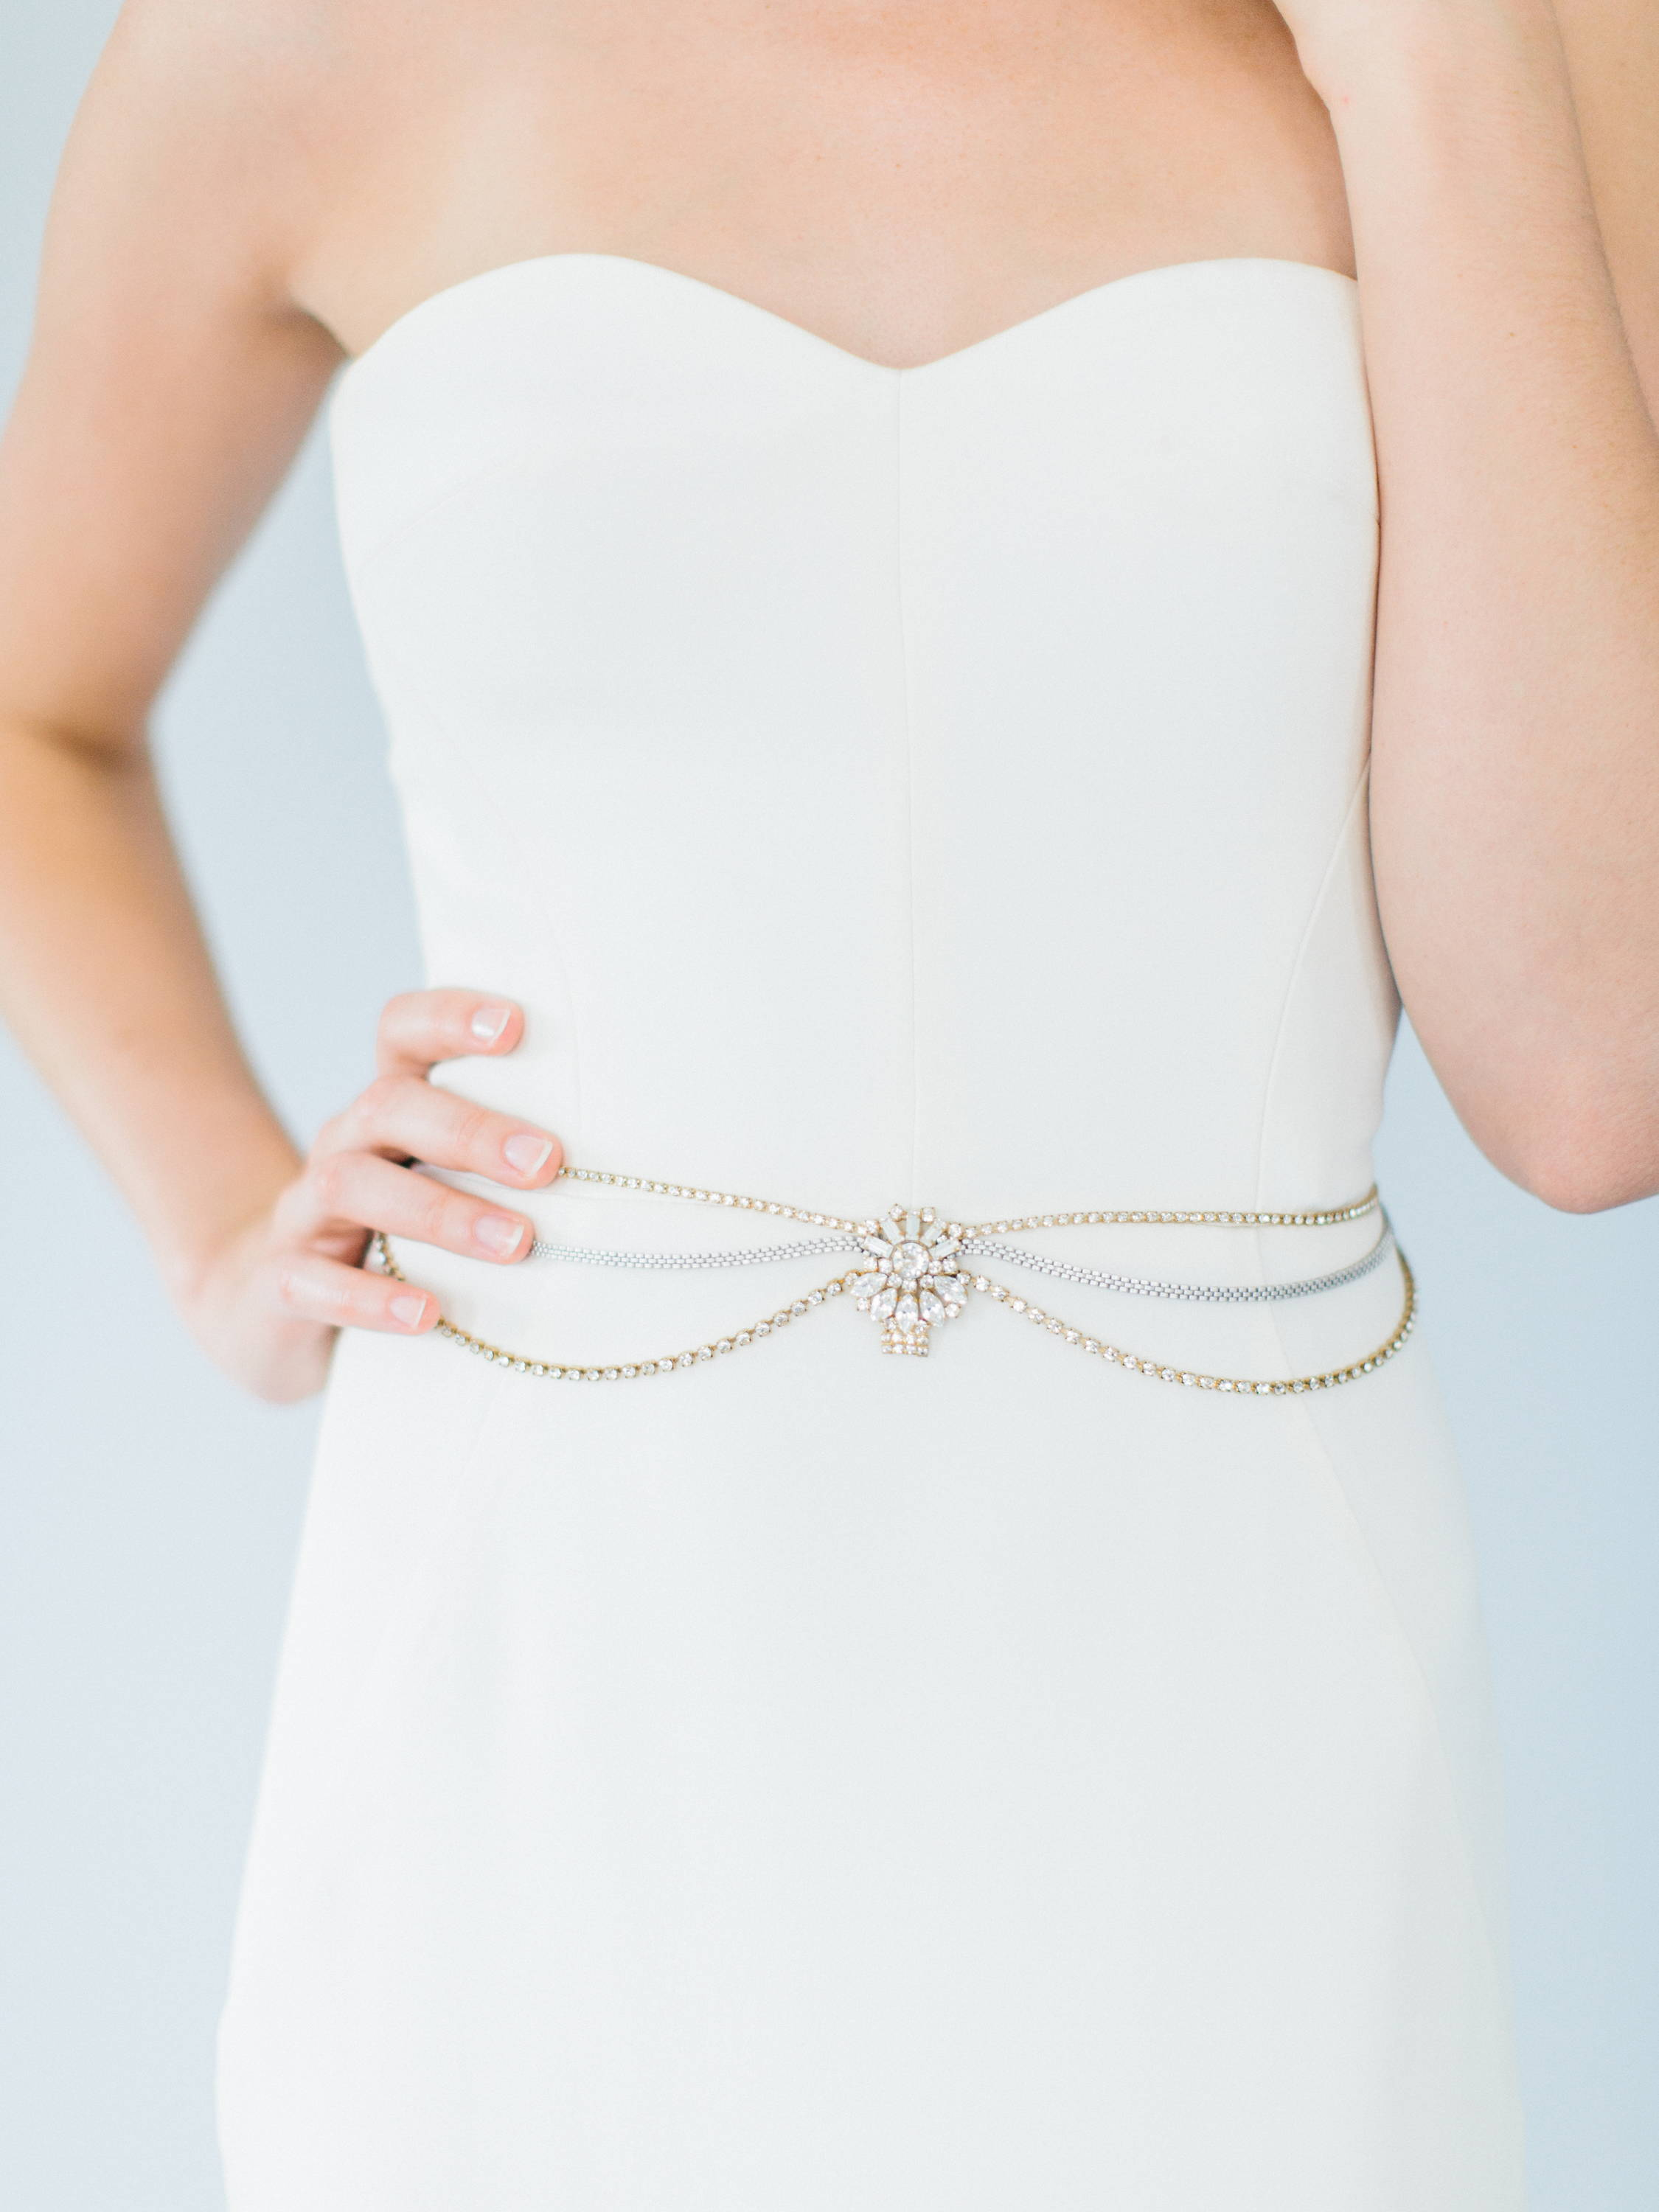 Ampersand Bridal Cairo Wedding Belt